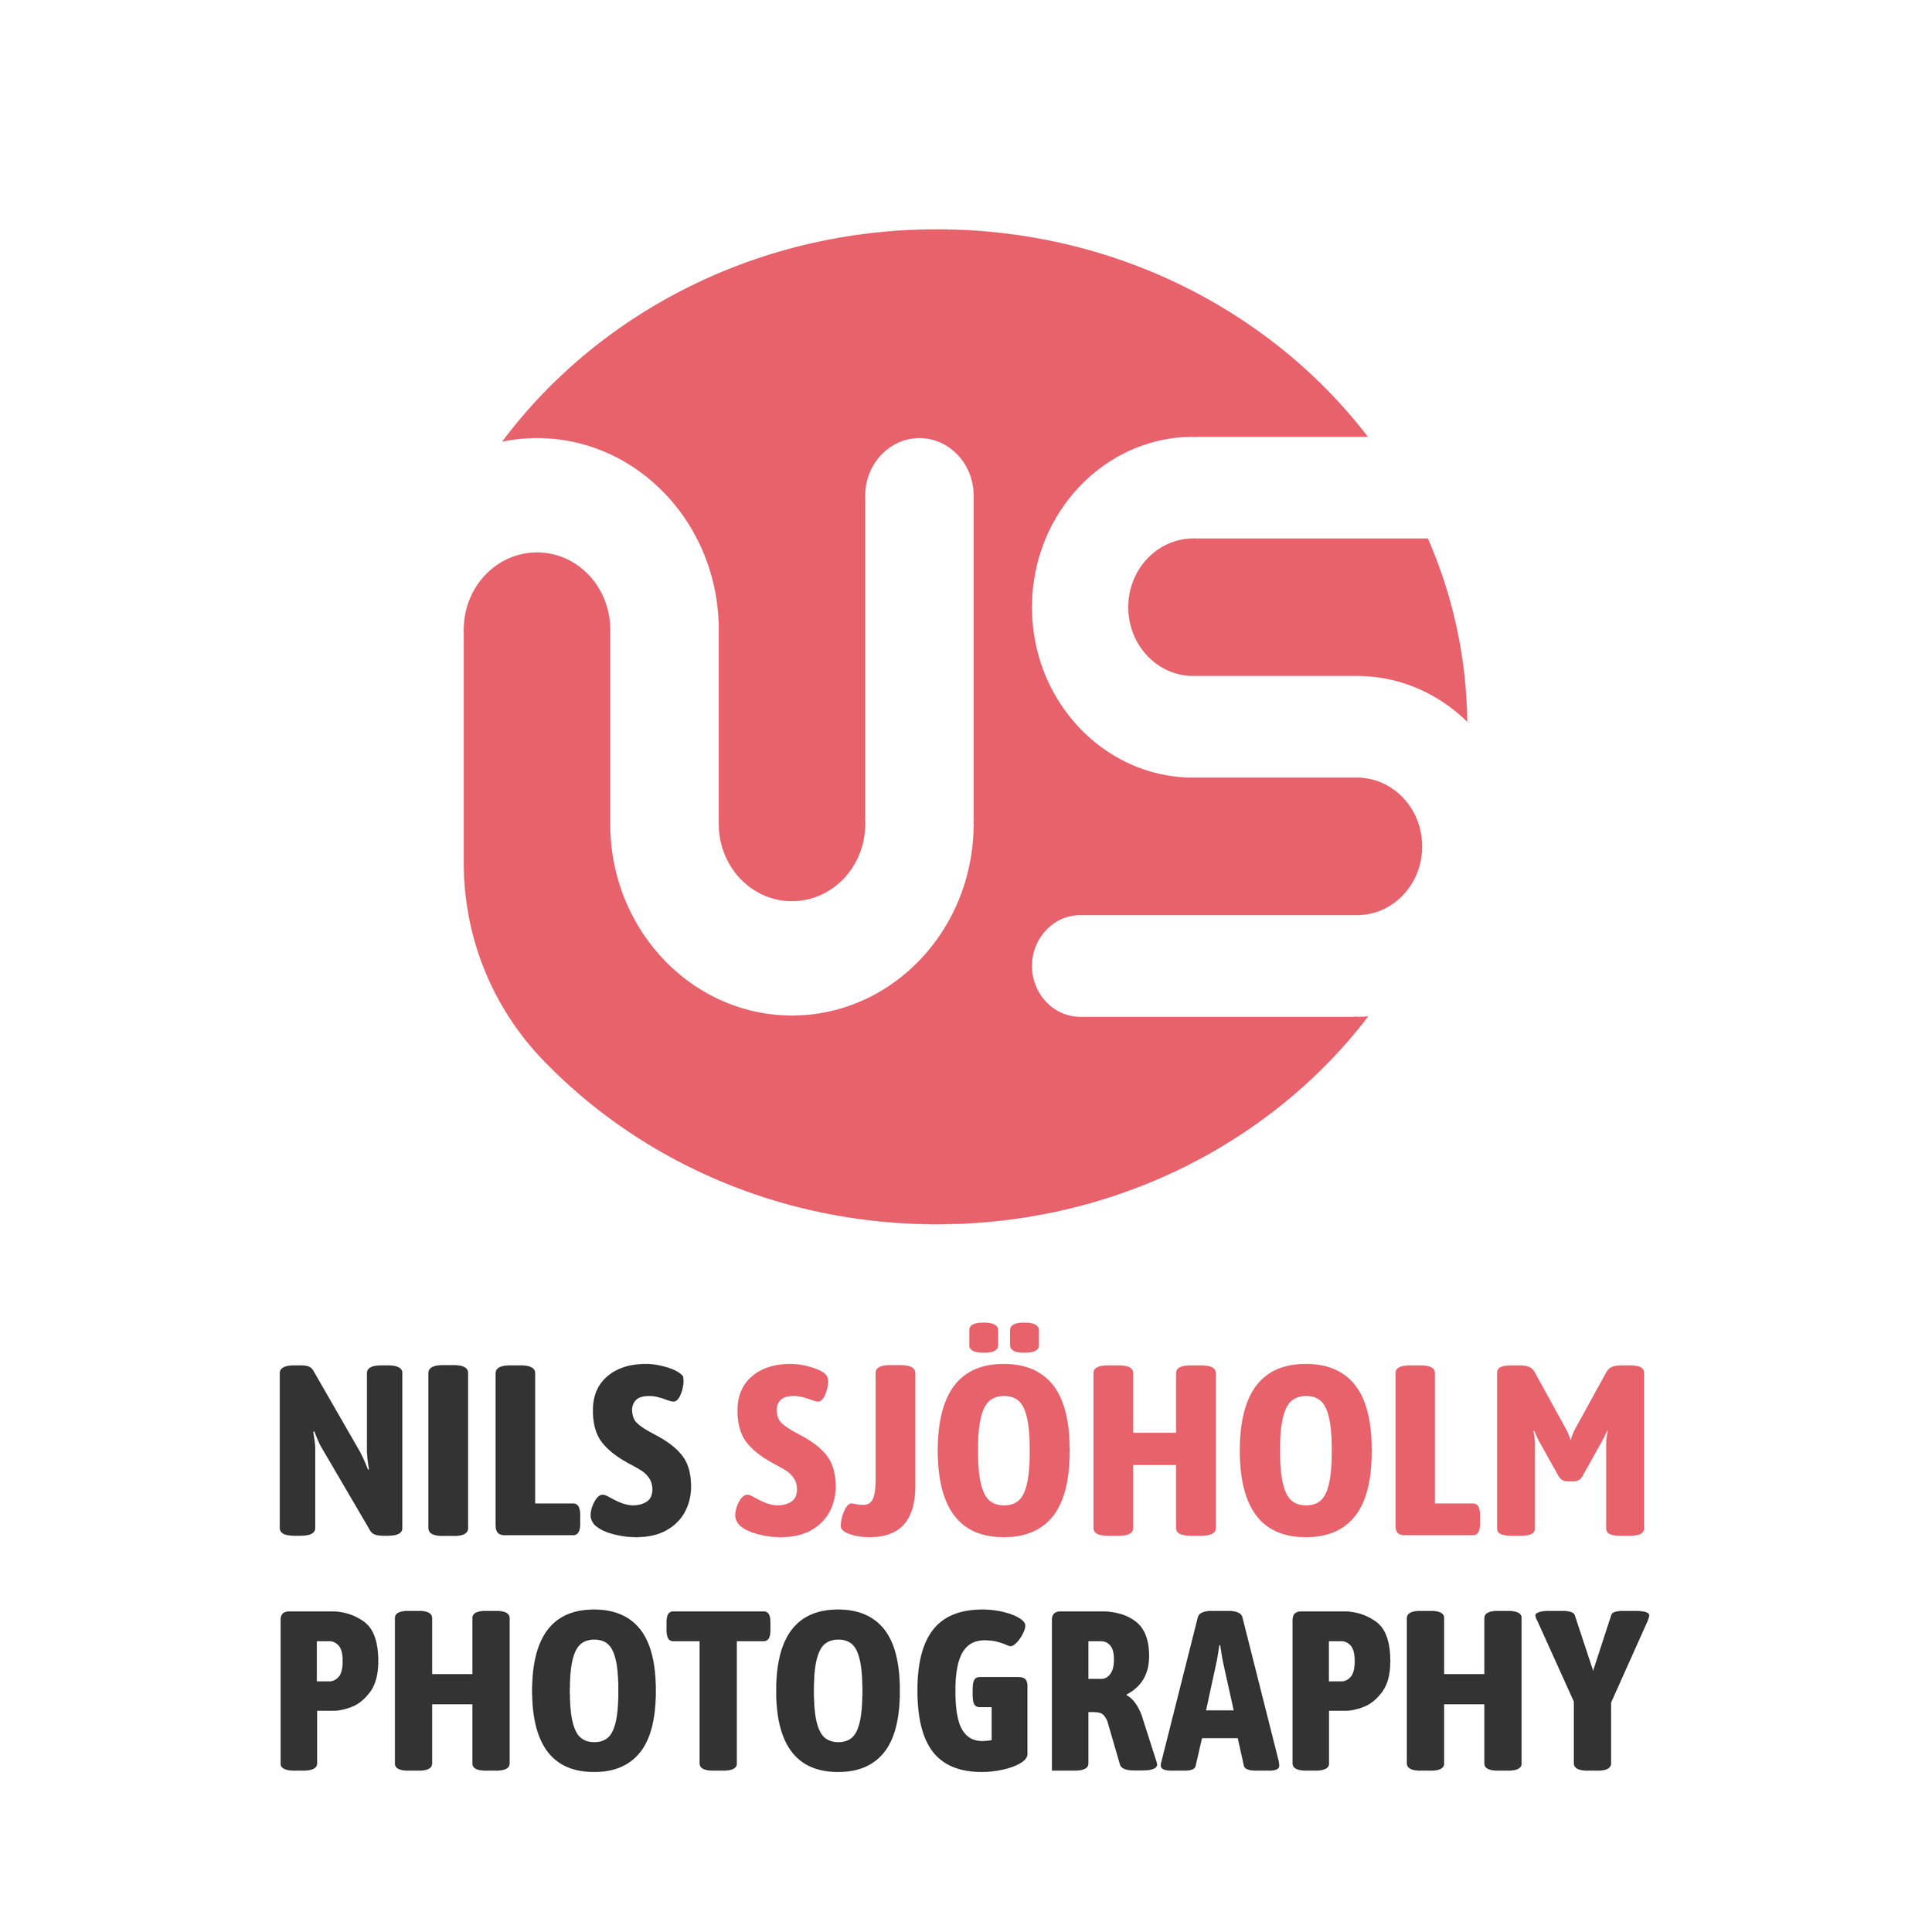 NILS SJÖHOLM PHOTOGRAPHY